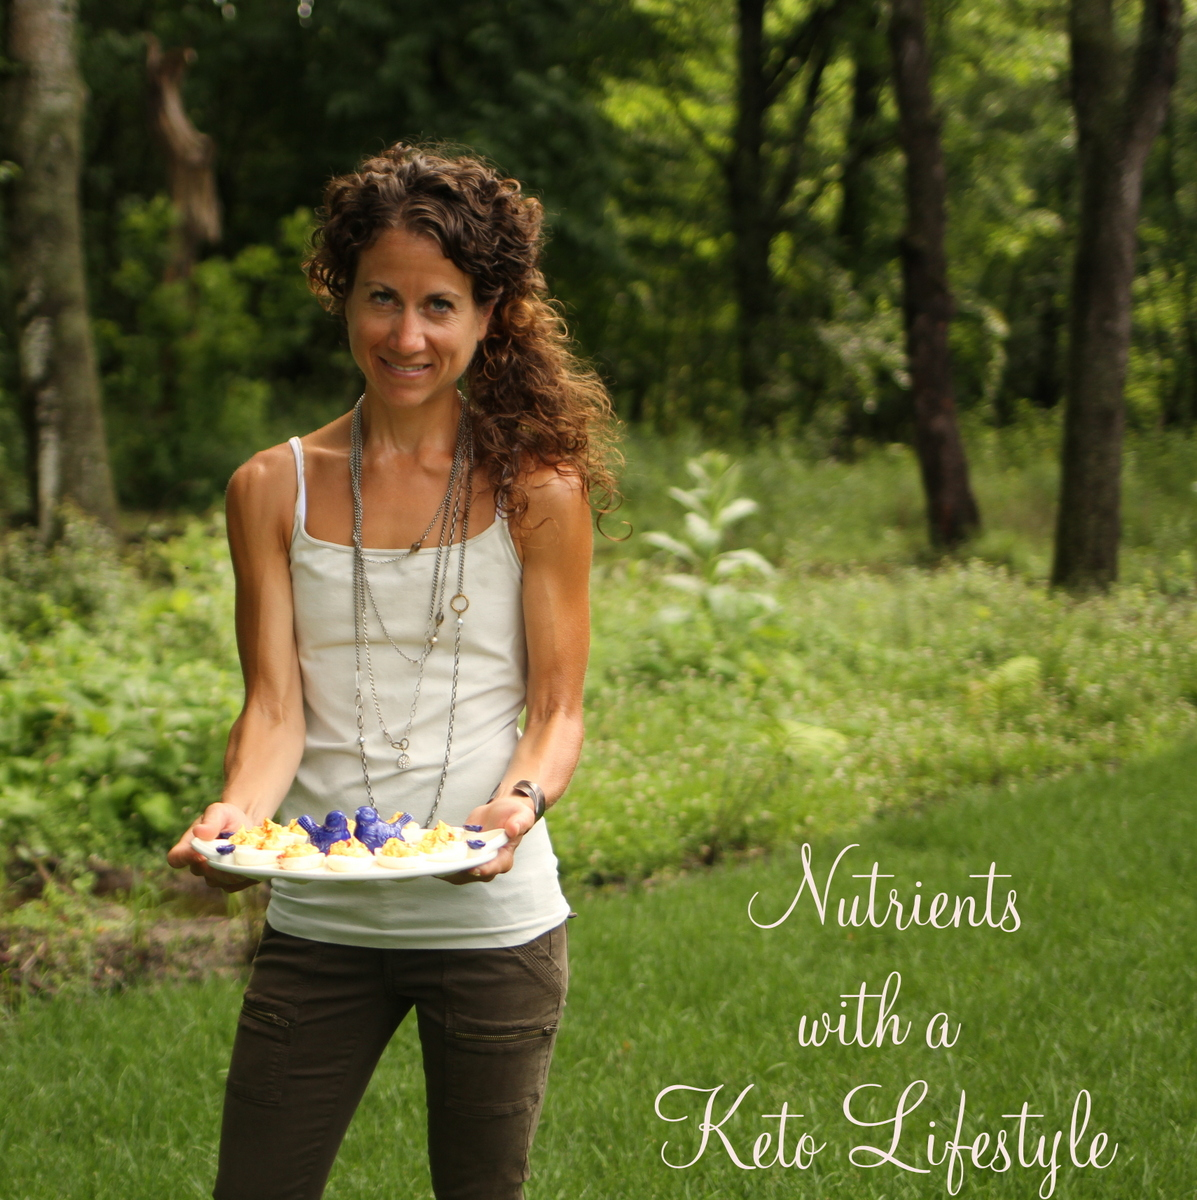 Nutrients with a Keto Lifestyle